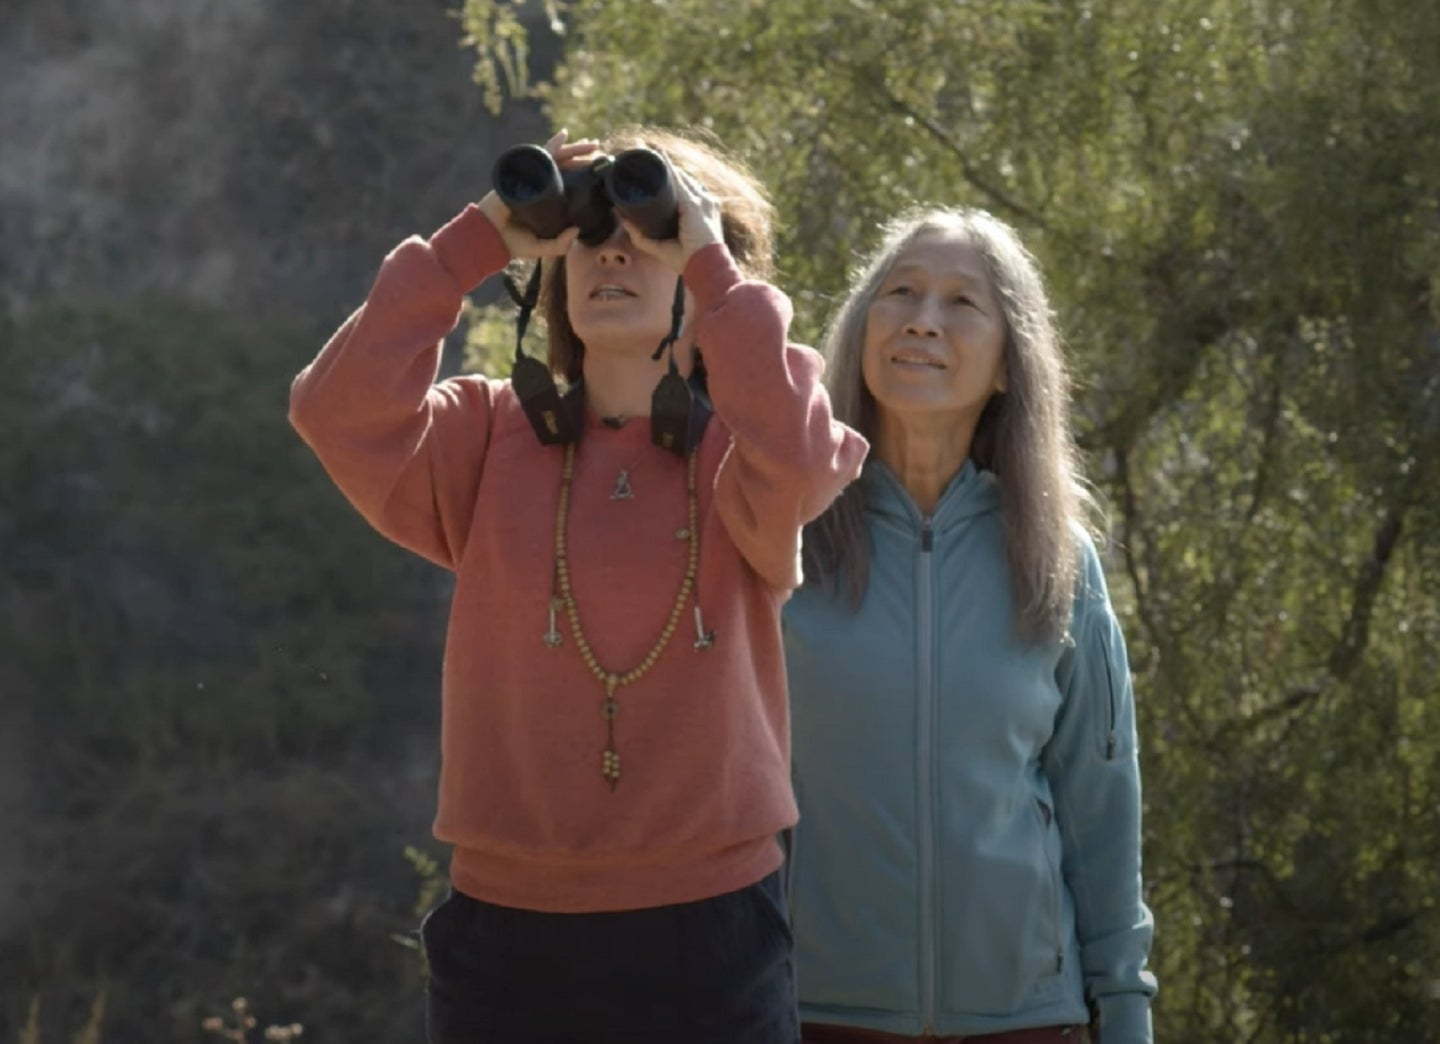 Paleontologist Jingmai O'Connor birding with her mother in China